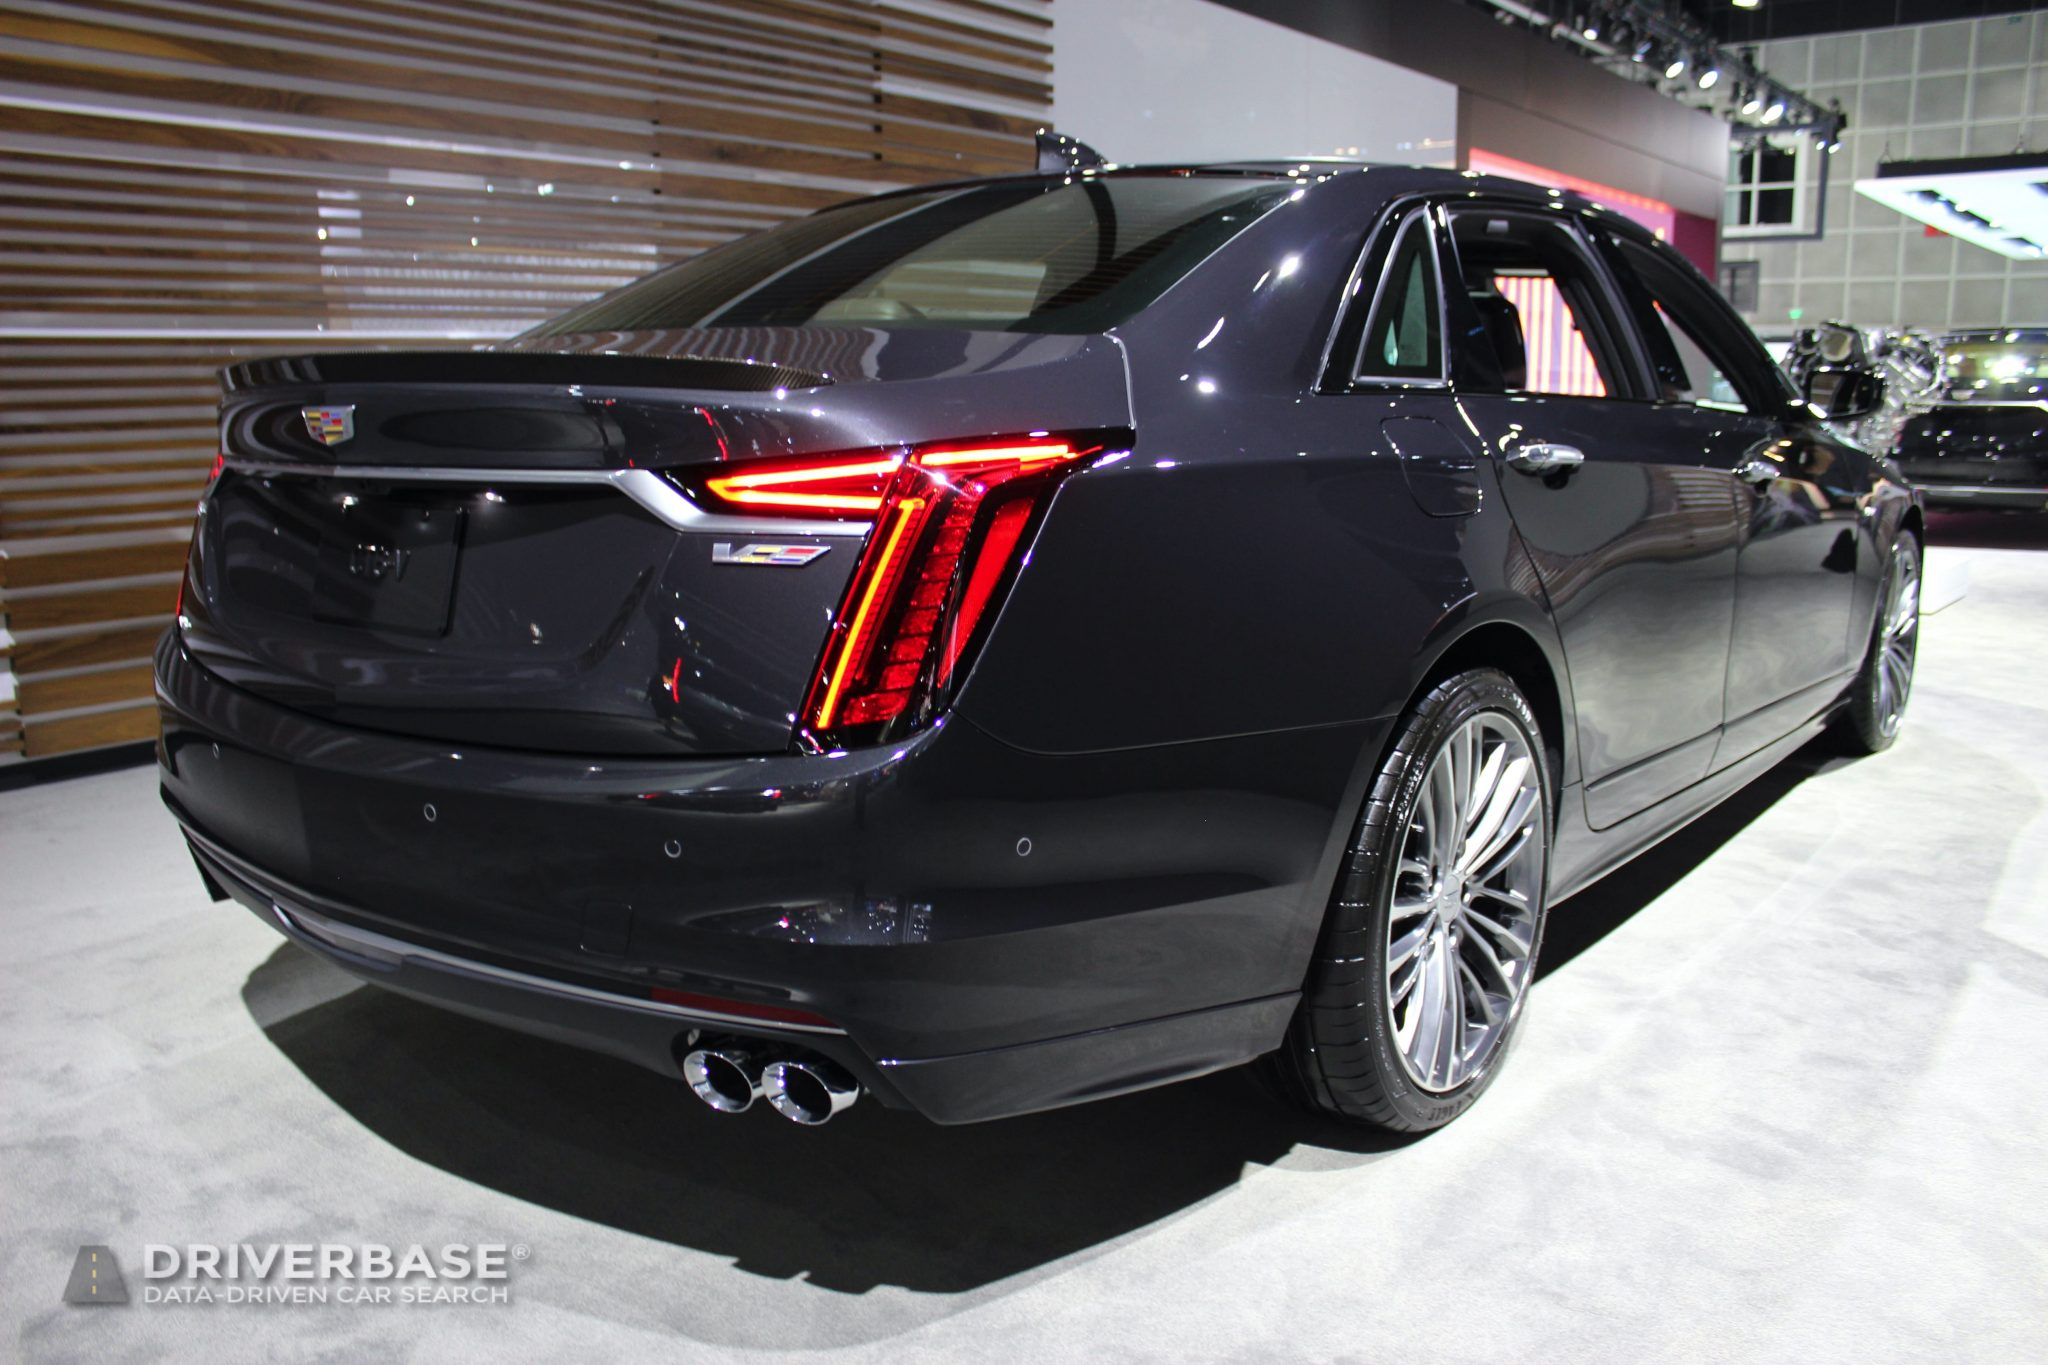 2020 Cadillac CT6 V at the 2019 Los Angeles Auto Show